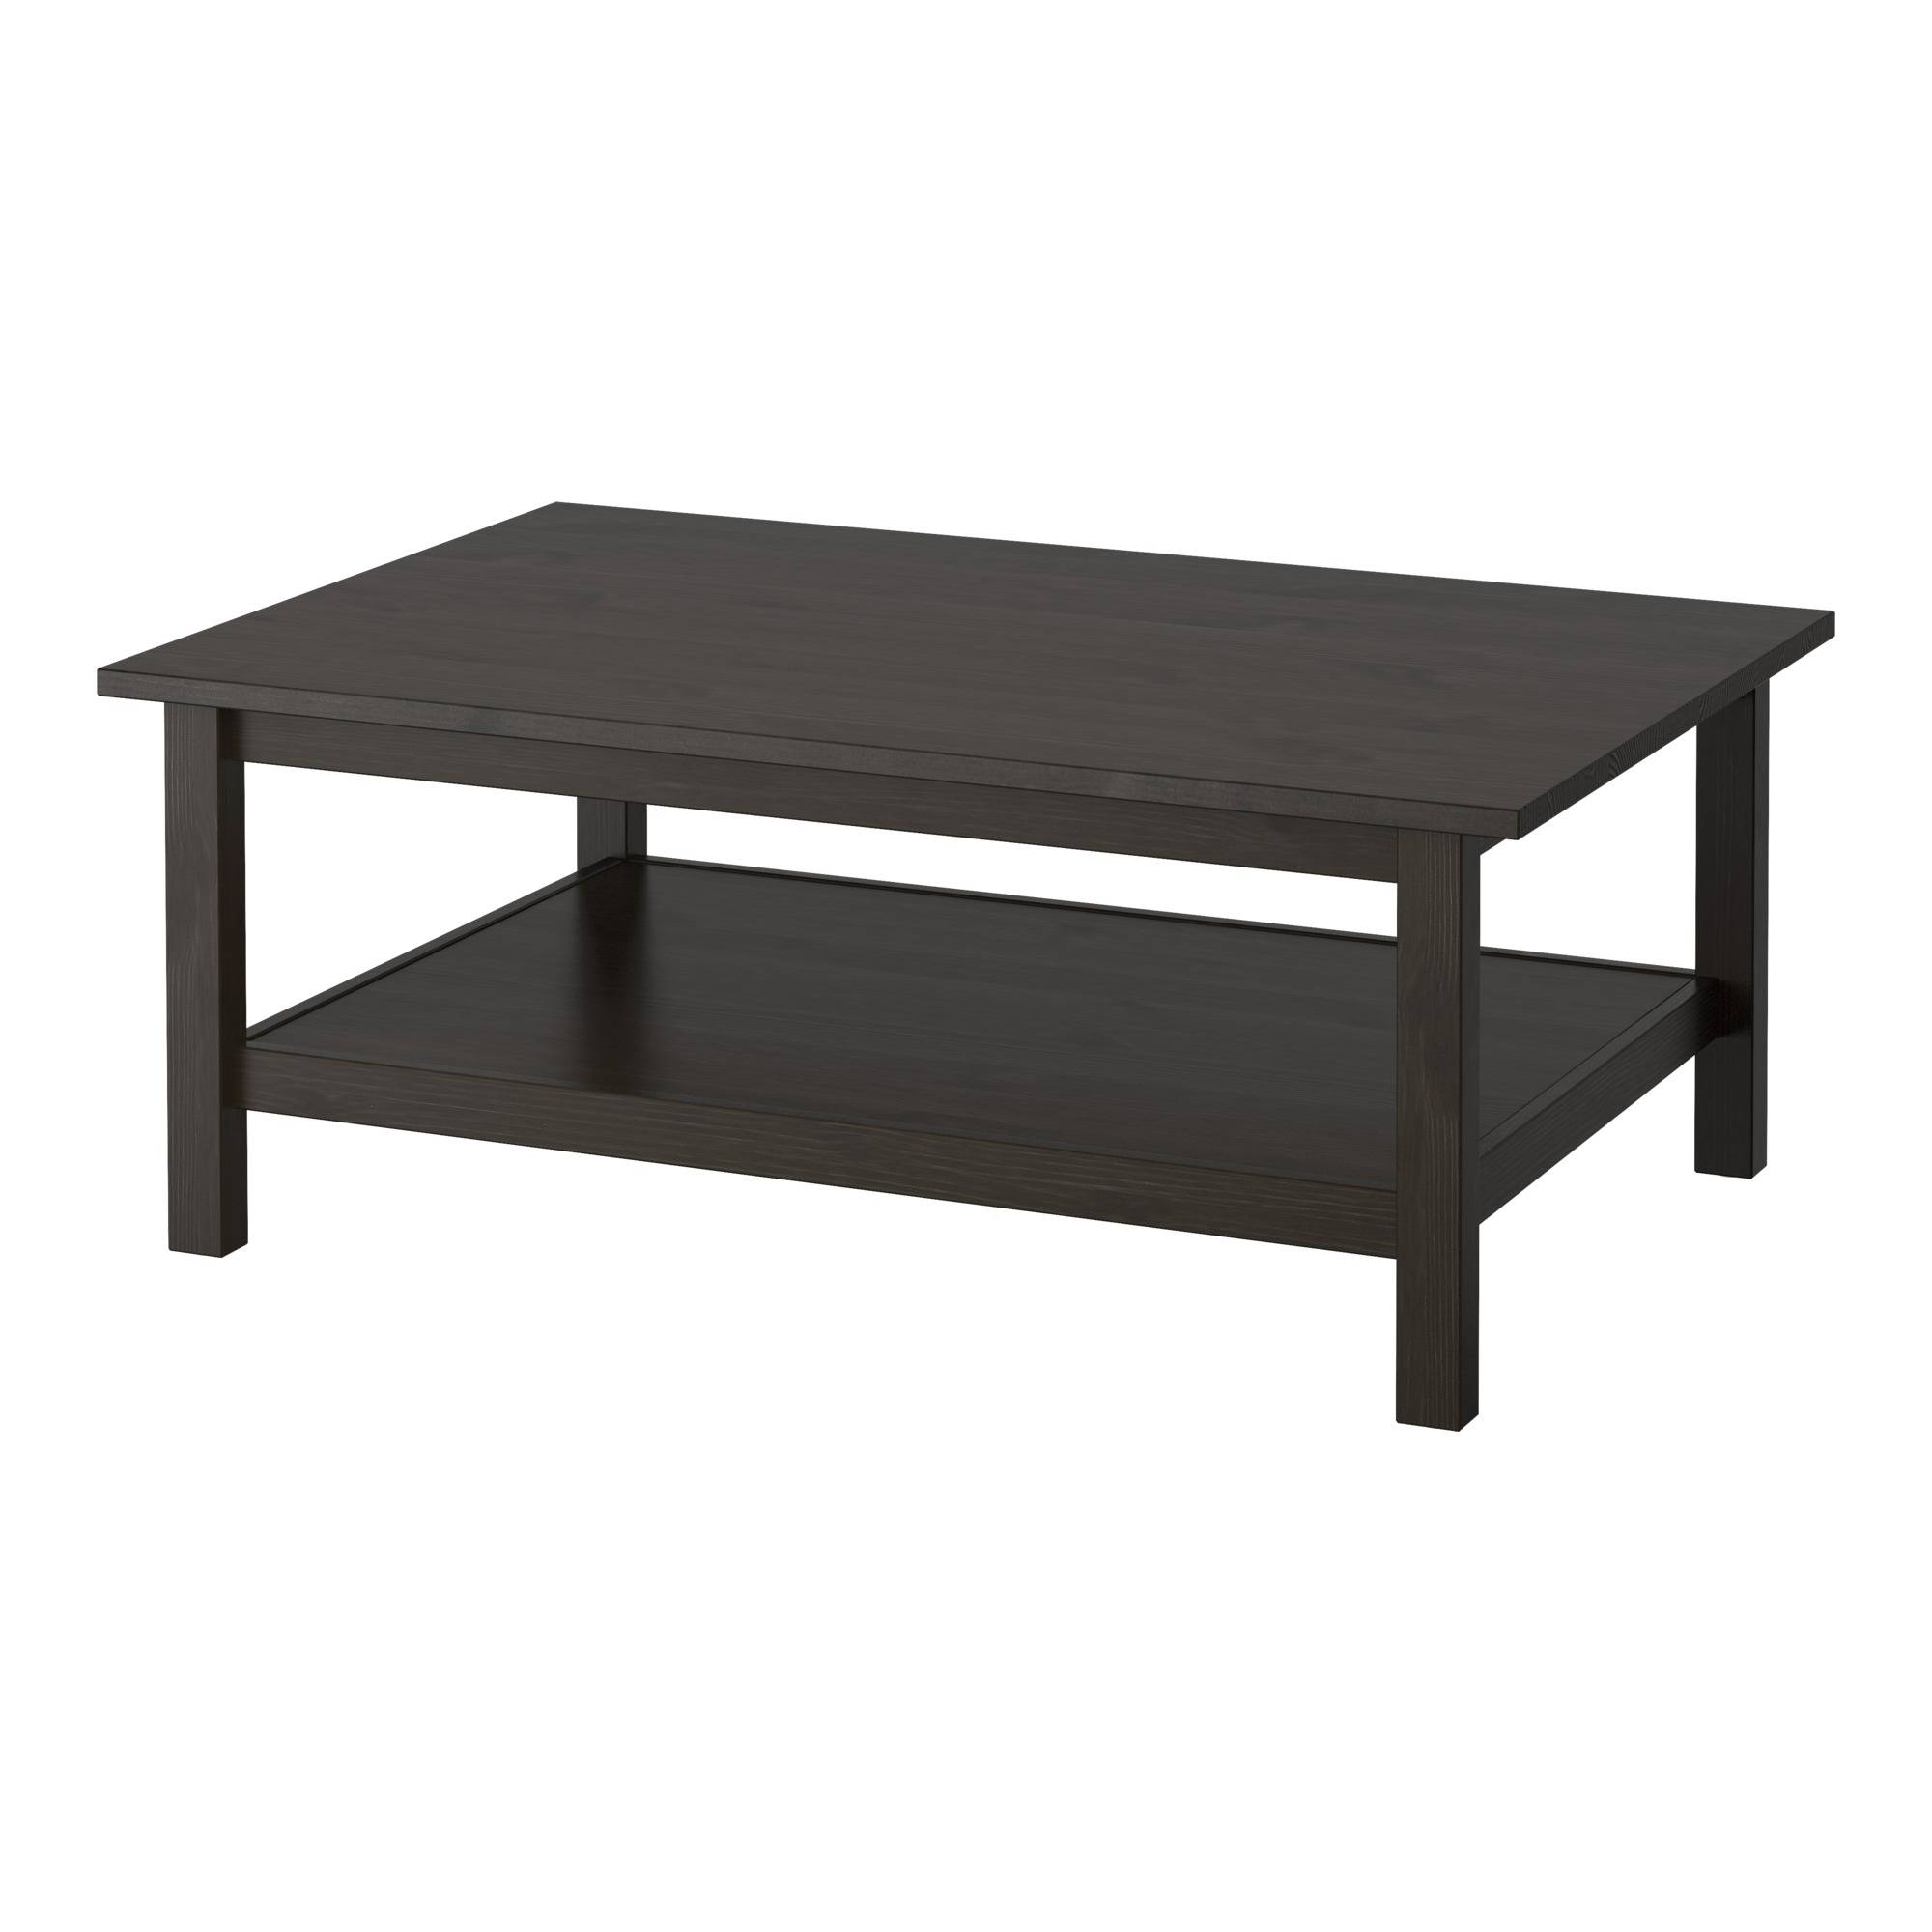 Coffee Tables: Amusing Coffee Tables Ikea Design Ideas Black Within Small Coffee Tables With Shelf (View 17 of 30)